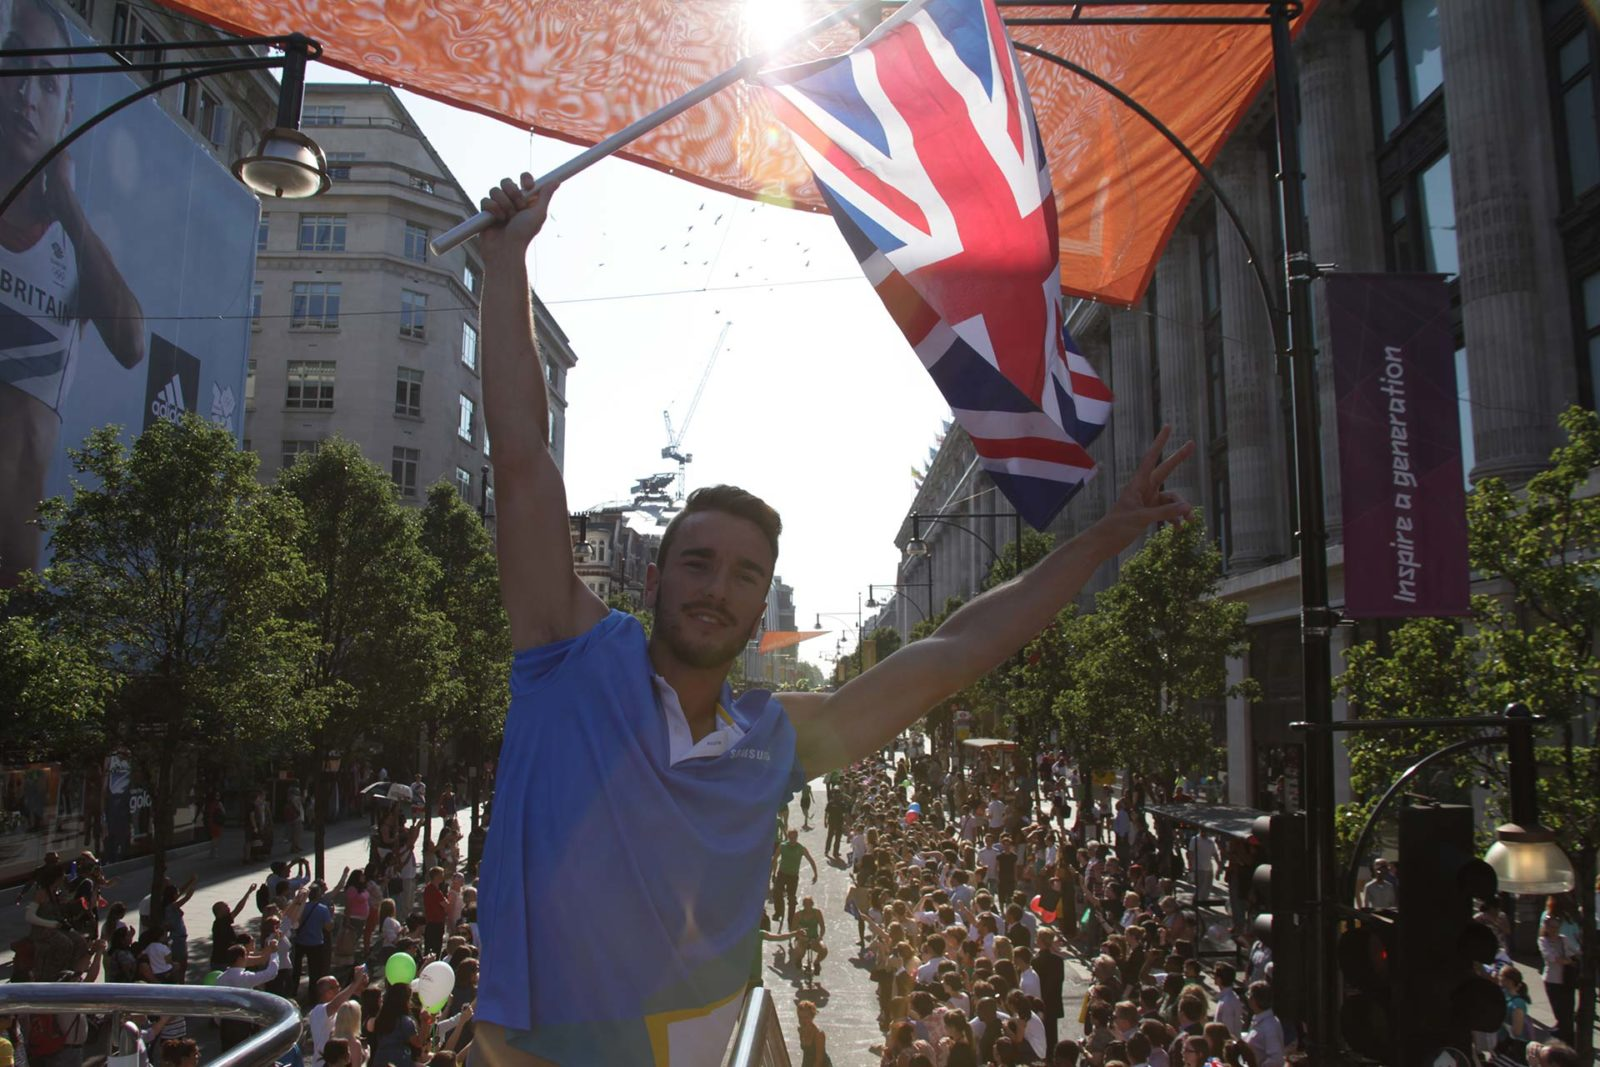 London Olympic Torch Relay 2012